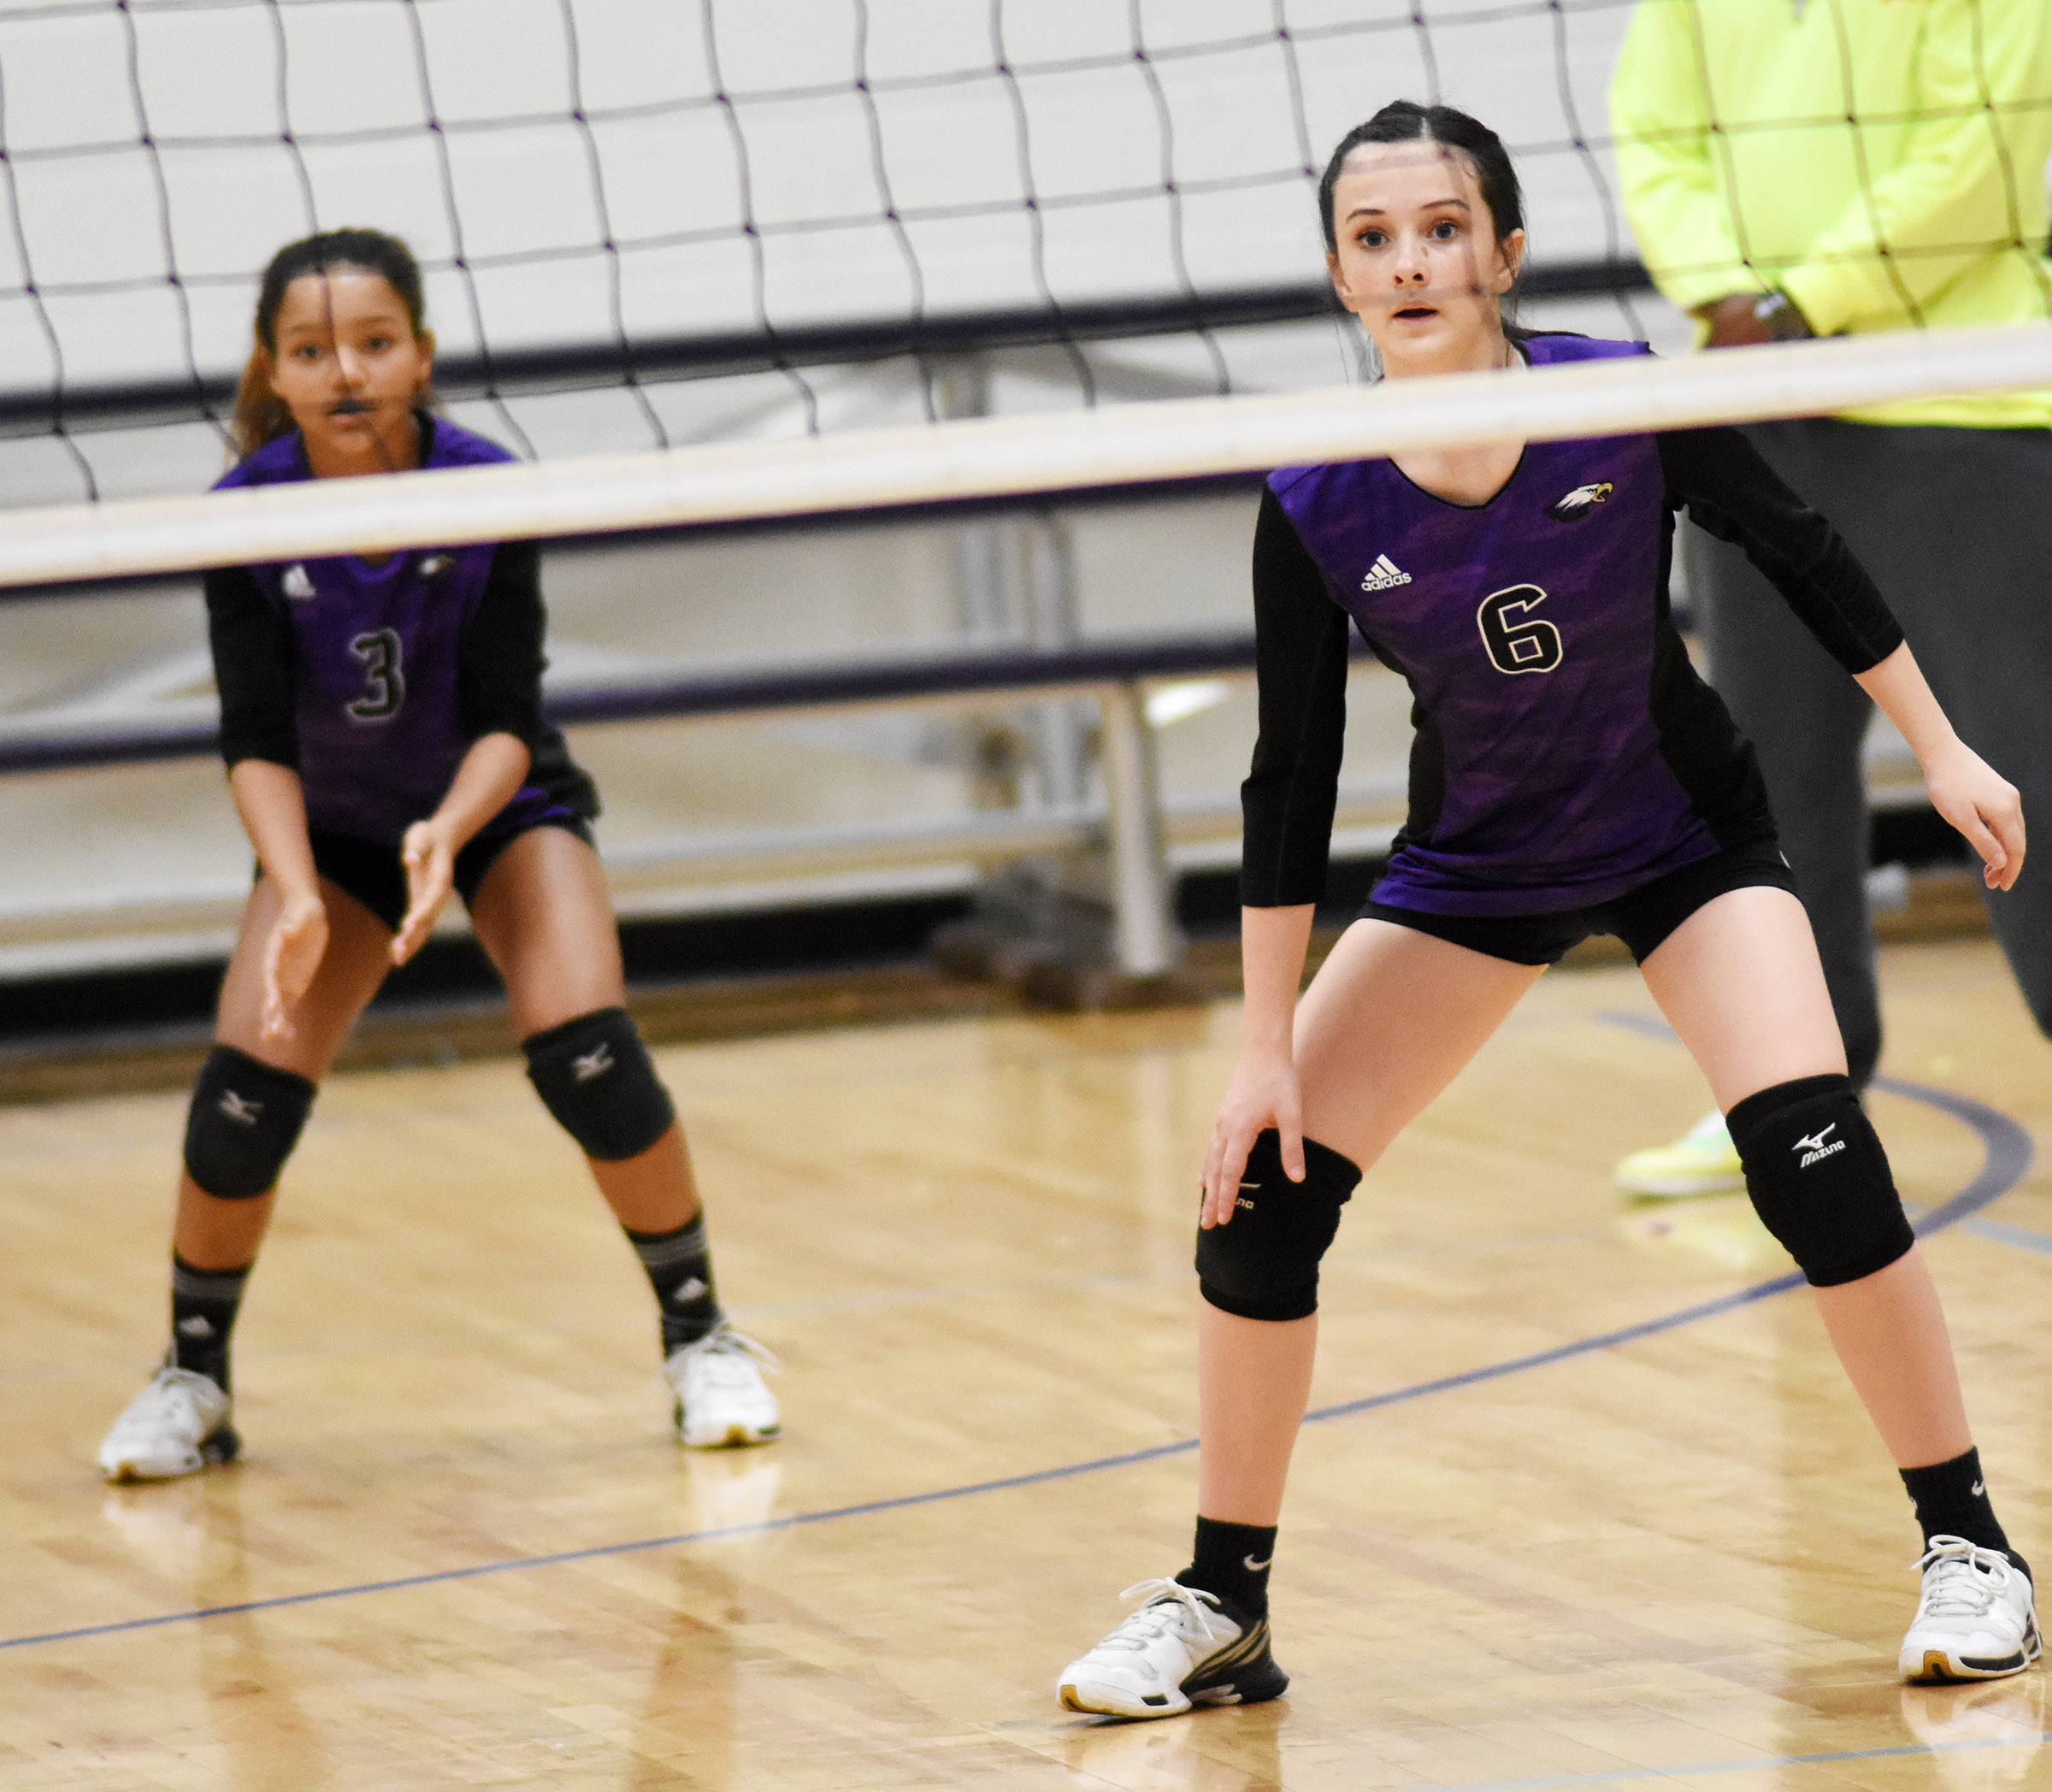 CMS eighth-graders Alexis Thomas, at left, and Sarah Adkins watch the ball.